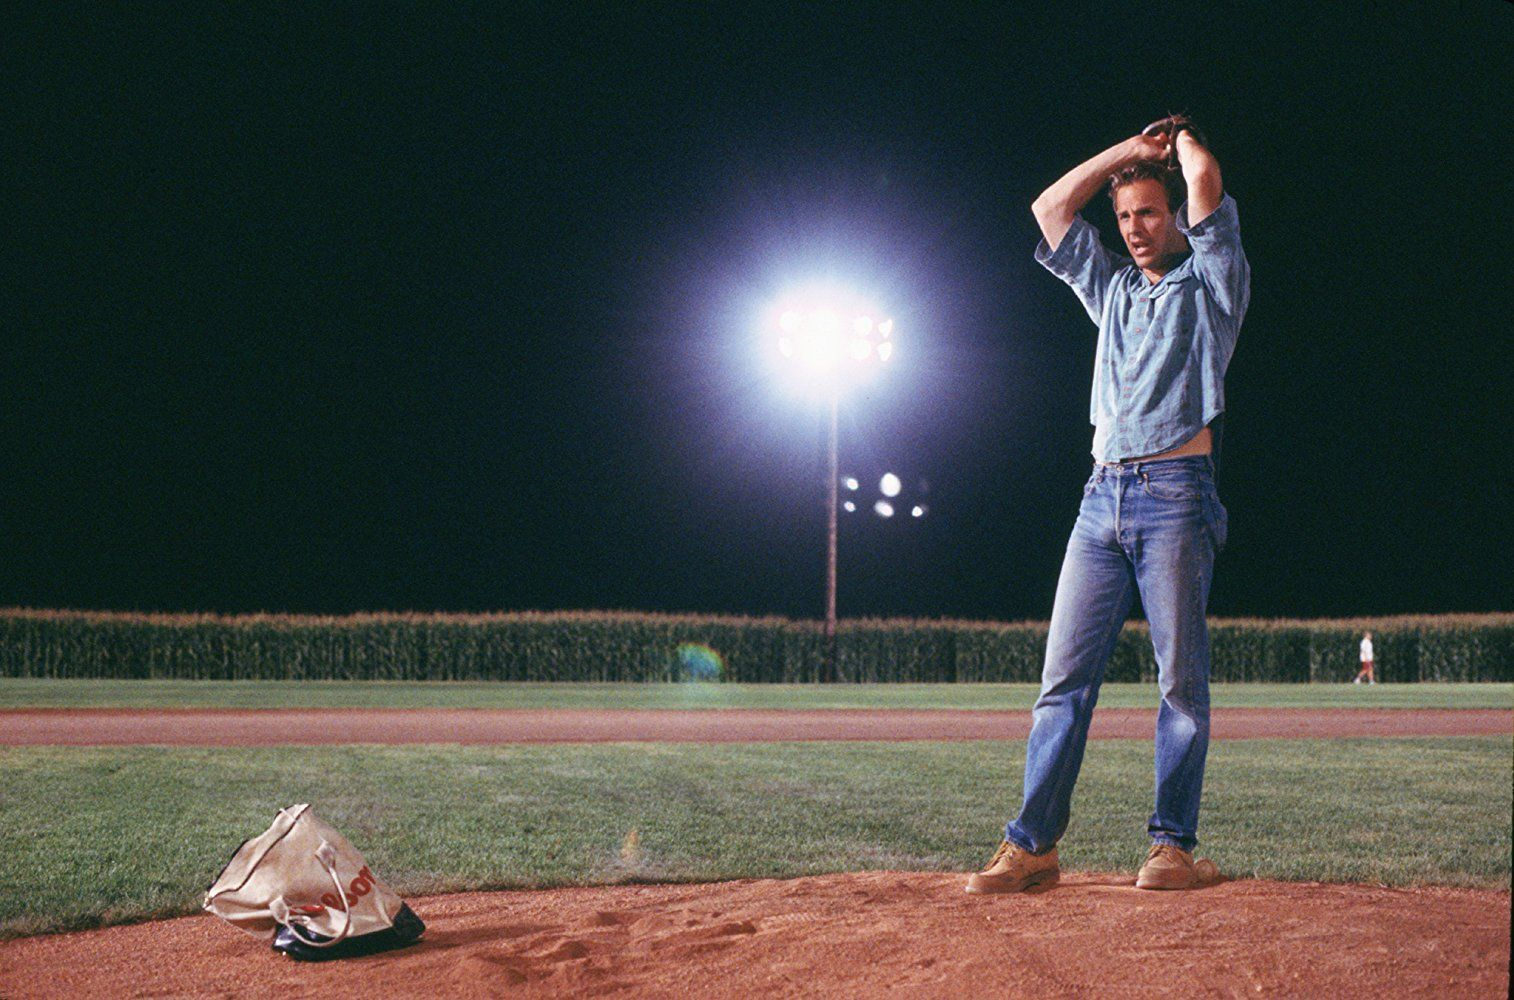 g3 22 Things You Might Not Have Realised About Field Of Dreams